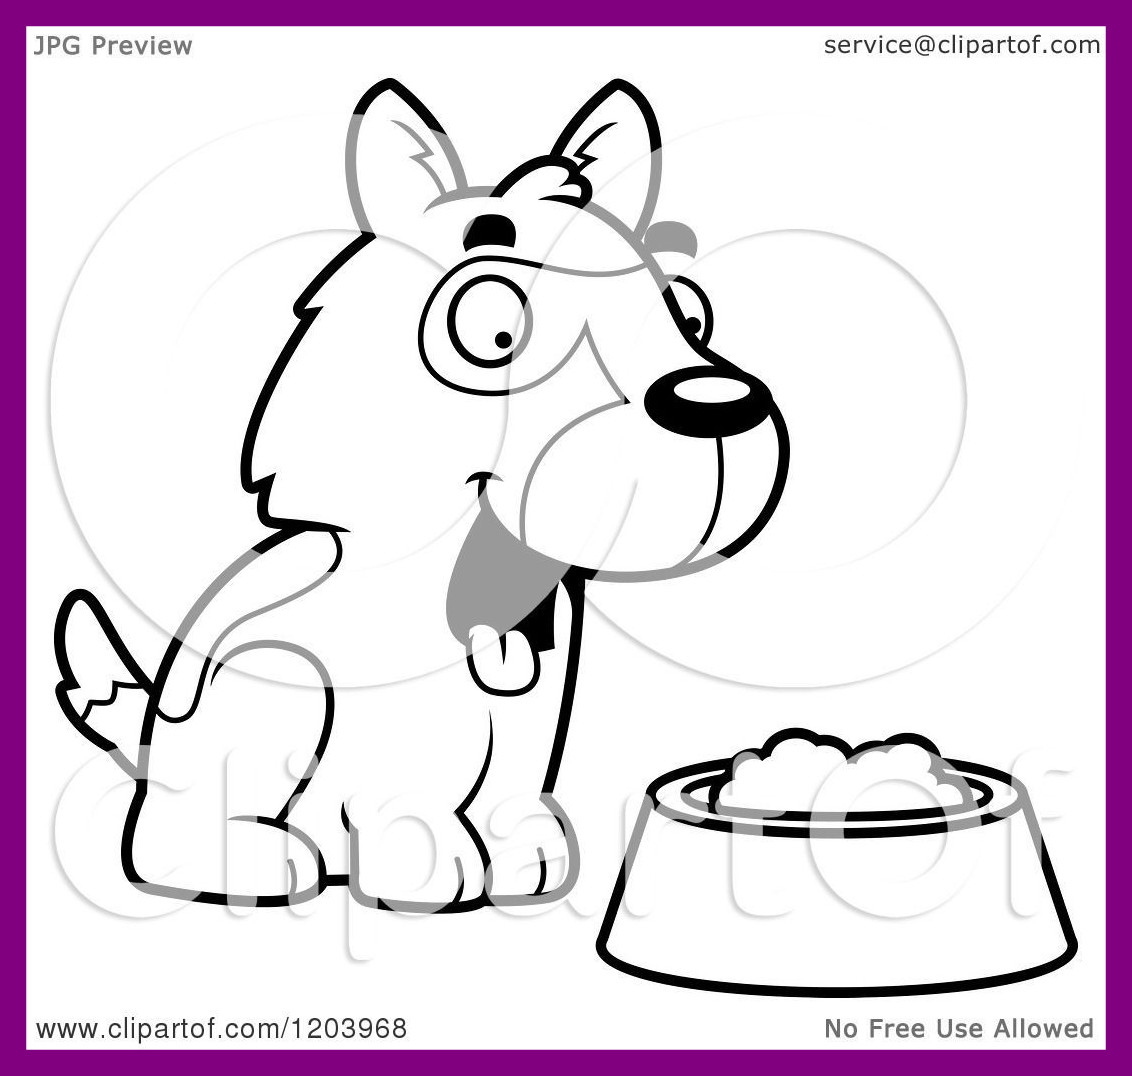 1132x1076 Amazing Sad Puppy Eyes Clipart Pets Pict Of Cute Dog Black